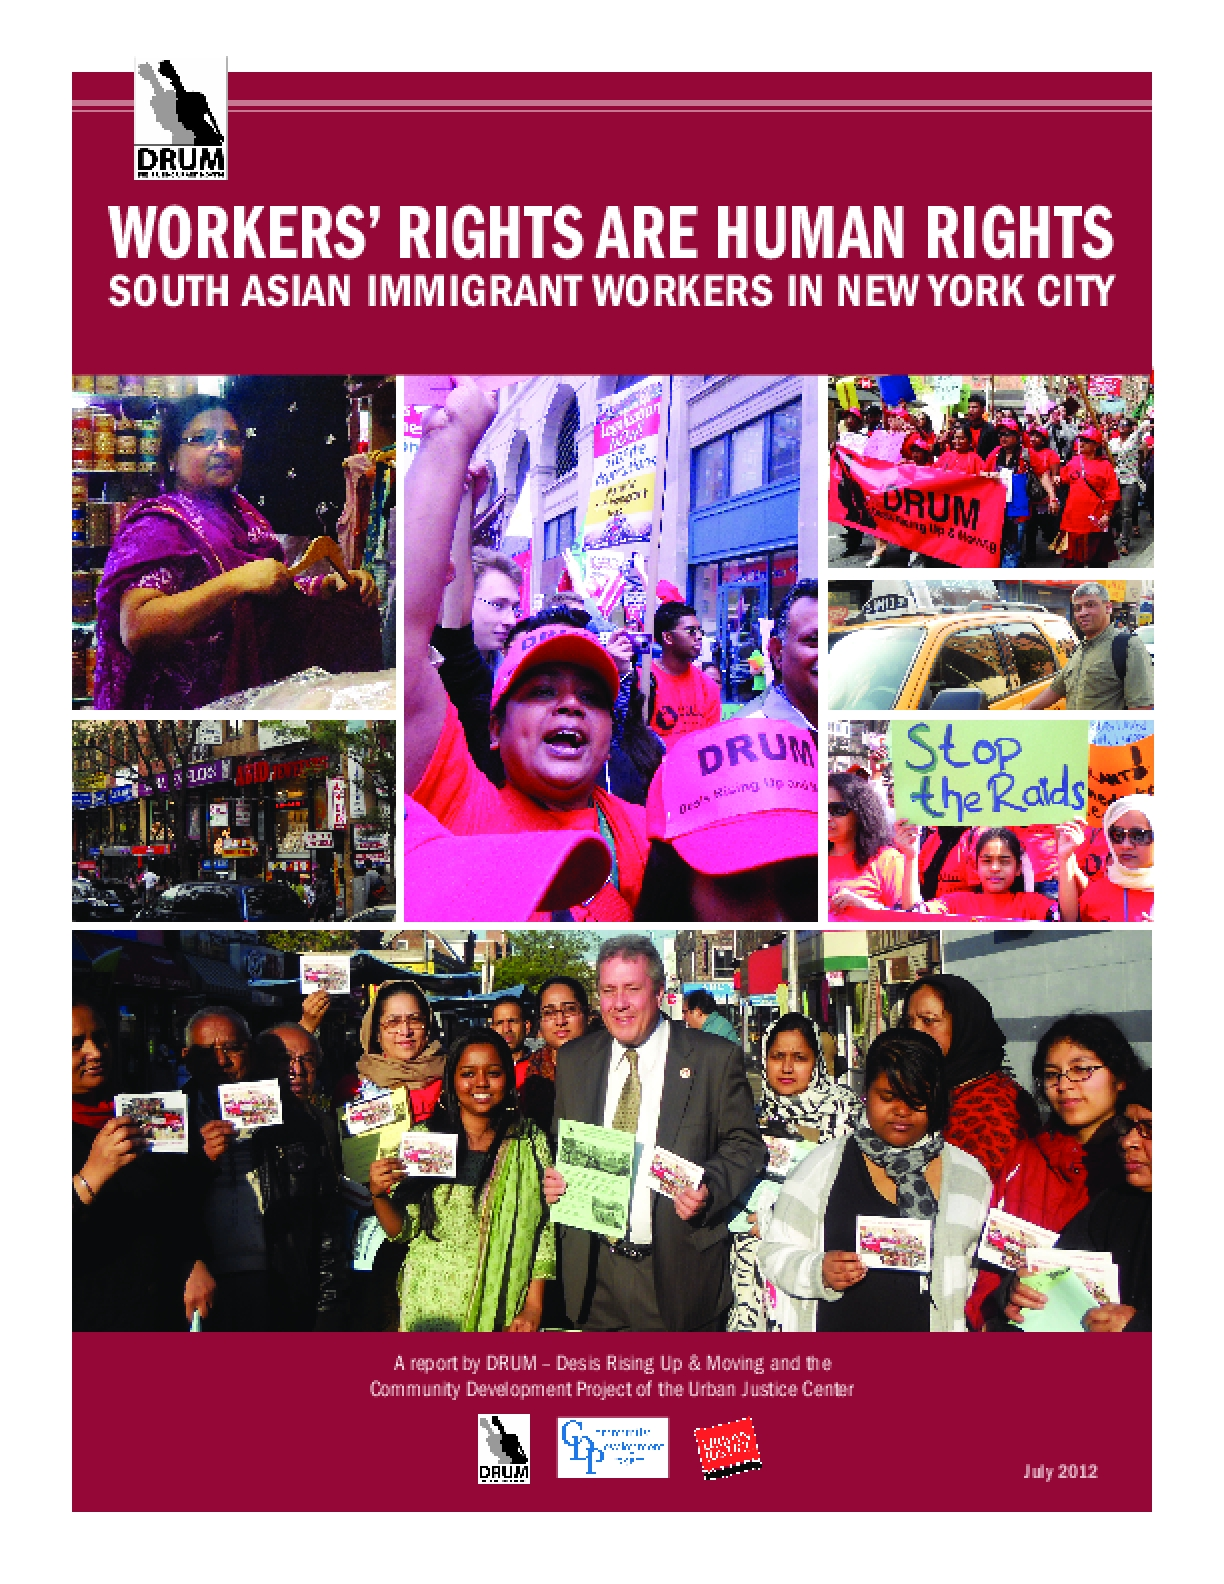 Workers' Rights Are Human Rights: South Asian Immigrant Workers in New York City